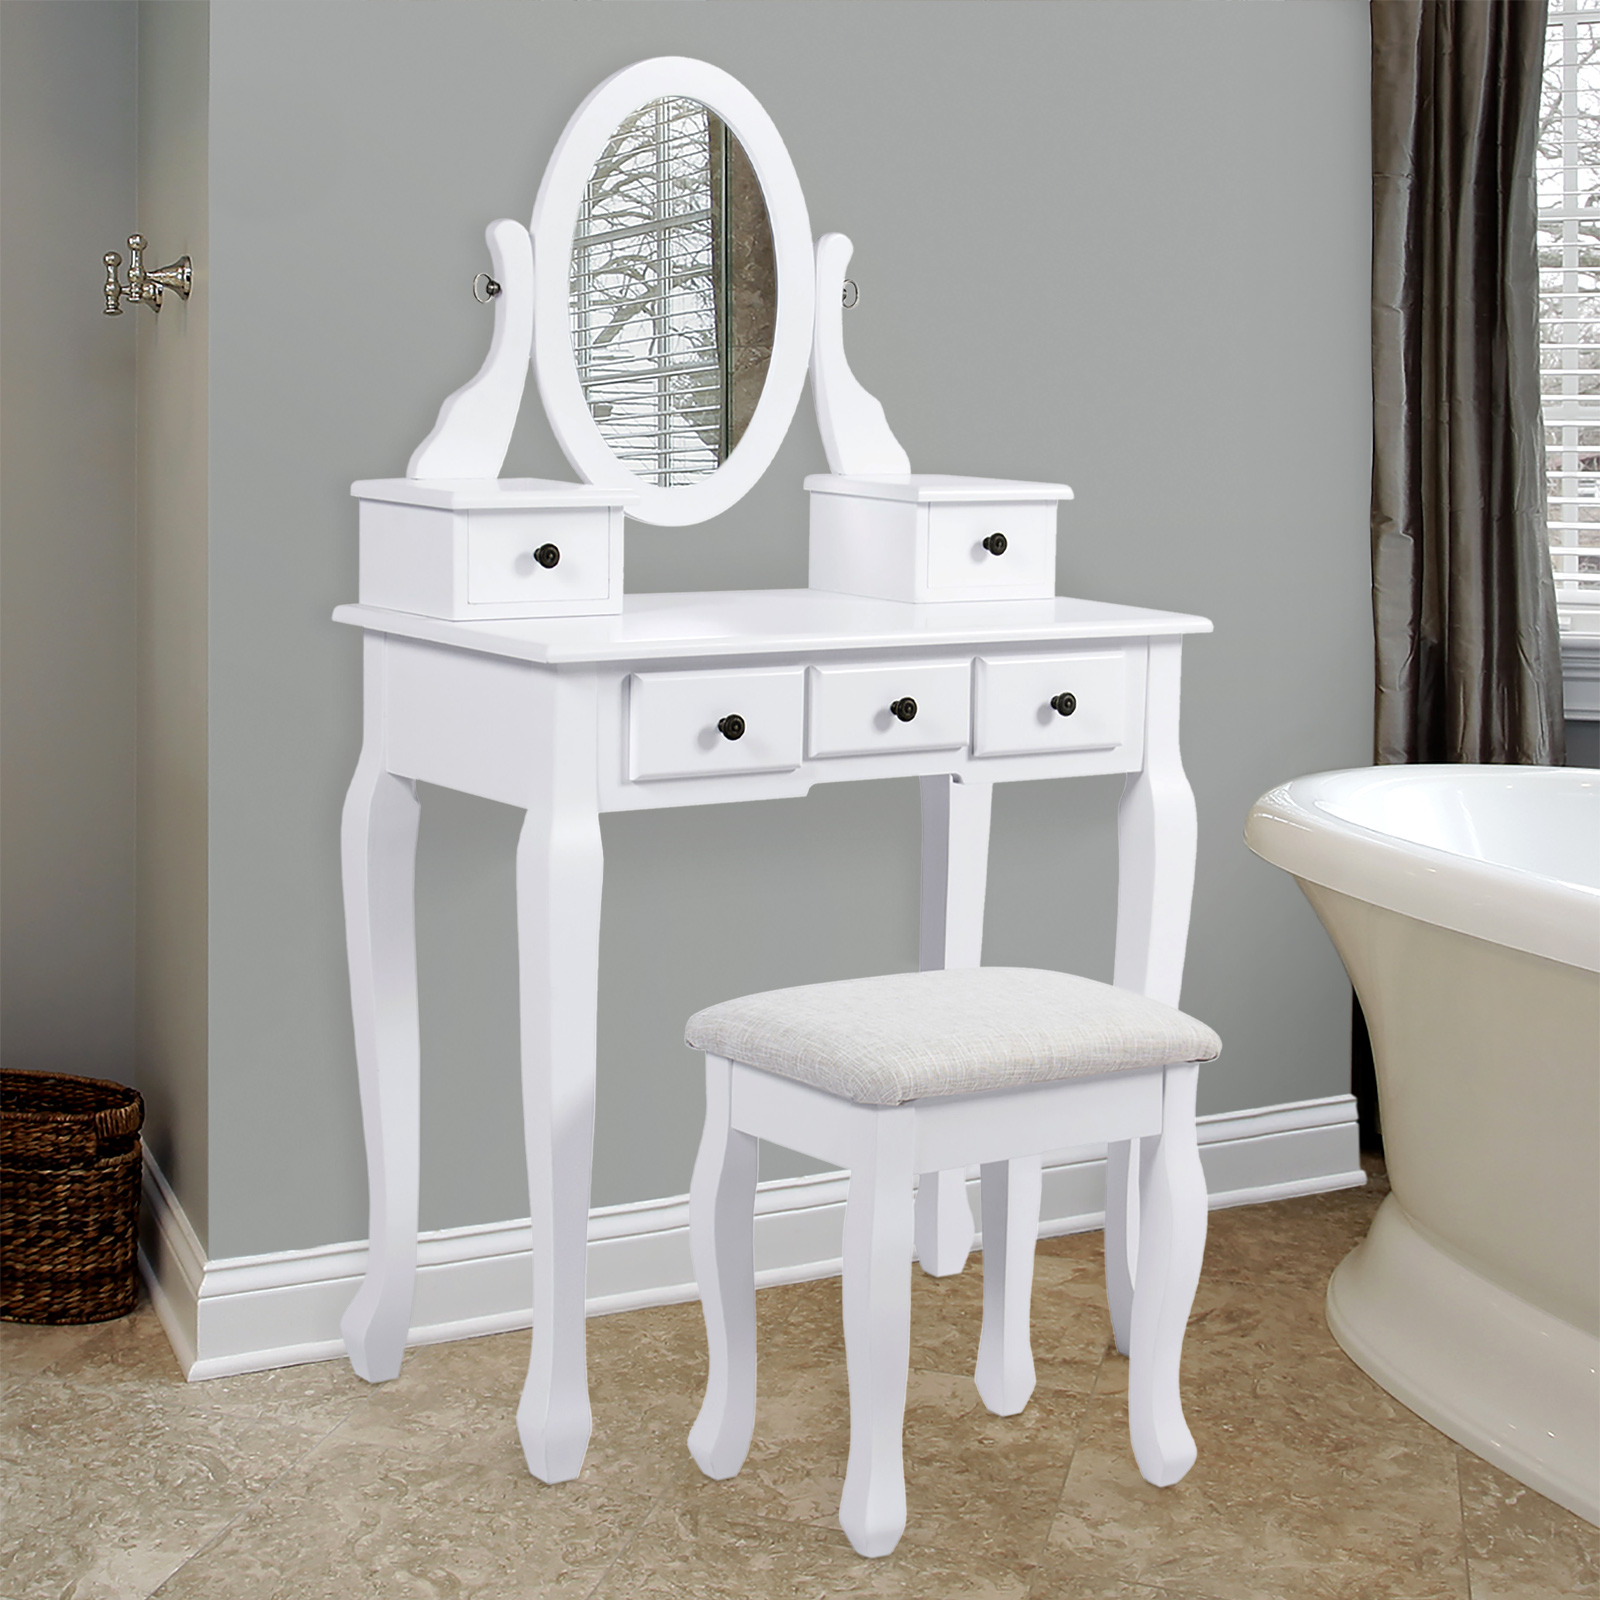 Best Choice Products Bathroom Vanity Table Jewelry Makeup Desk Hair Dressing  Organizer Bench Drawer White